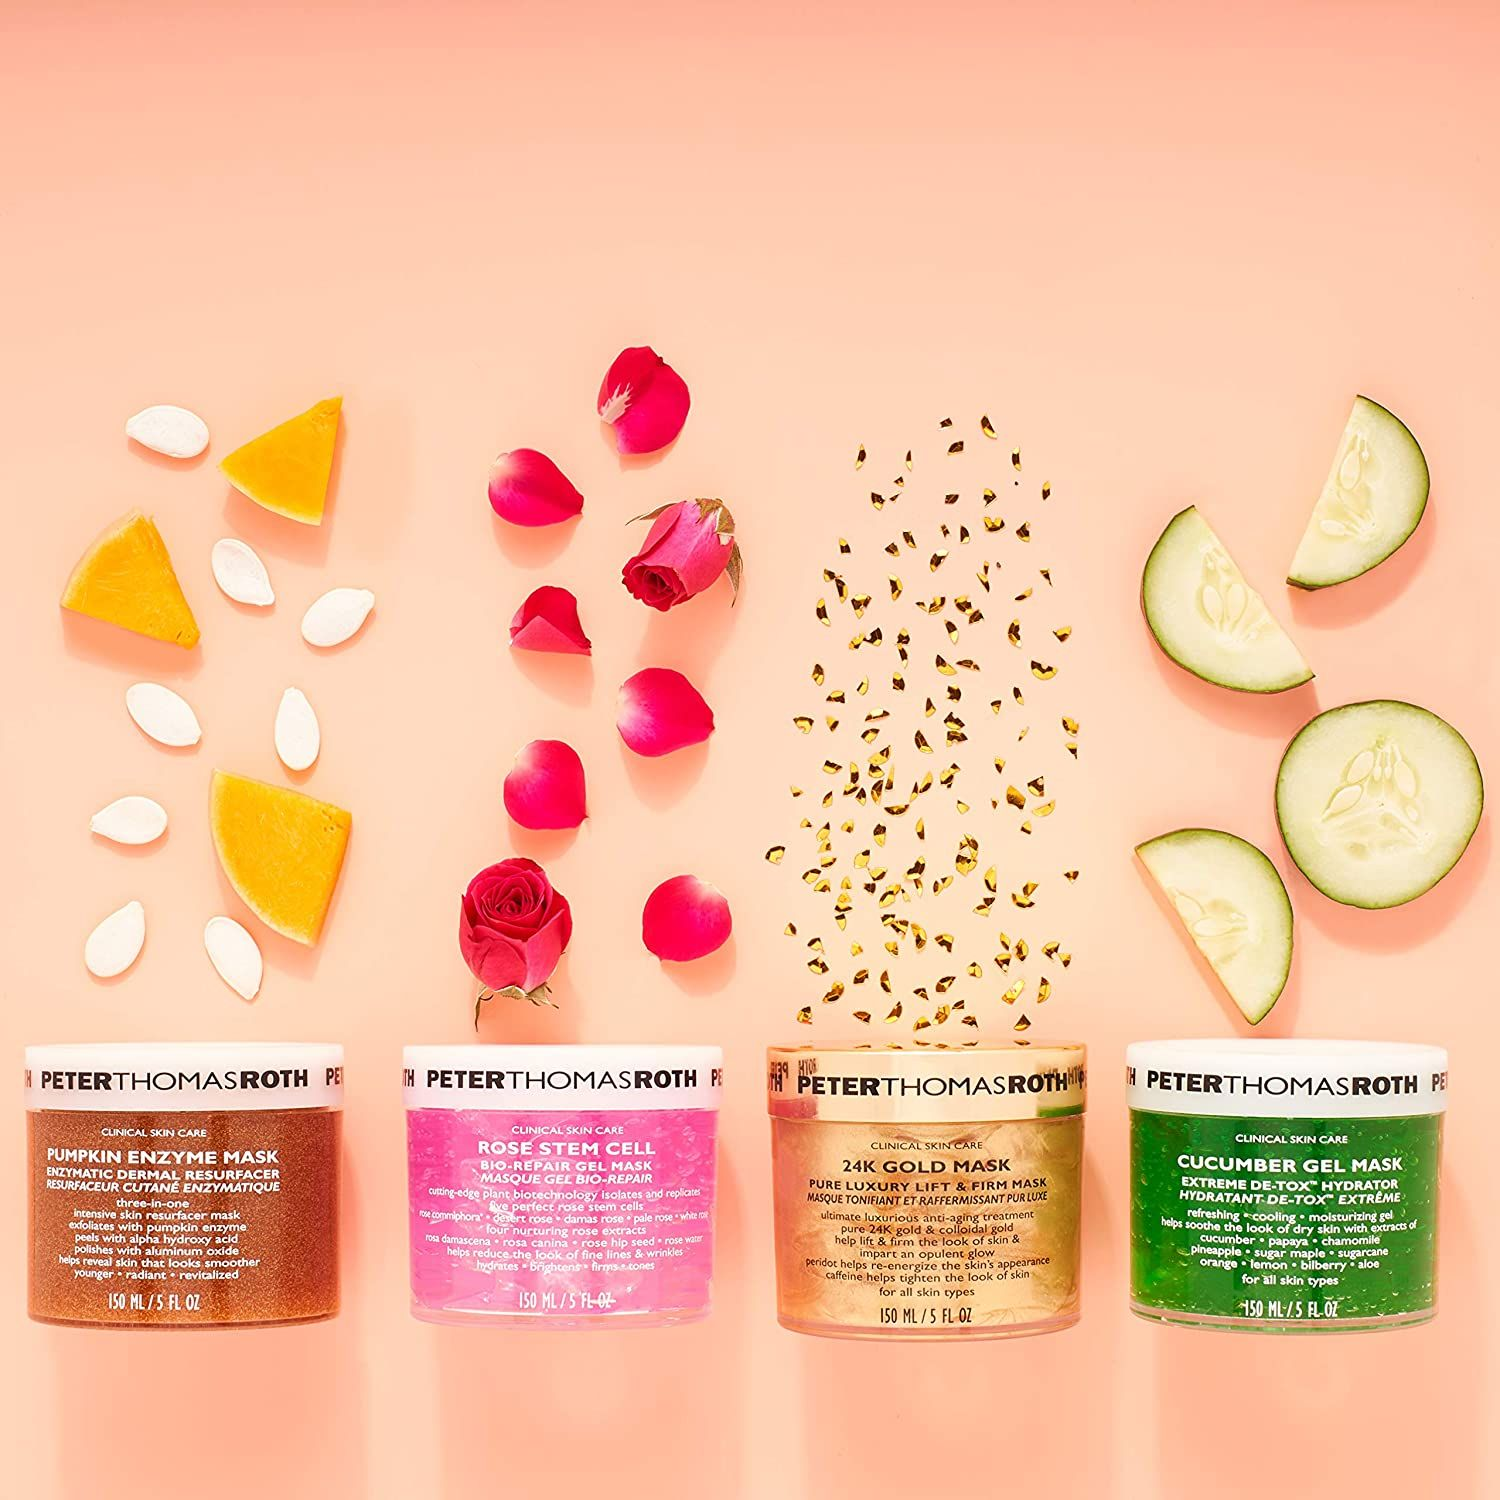 Cucumber Gel Mask Extreme De Tox Hydrator Cooling And Hydrating Facial Mask In 2020 Pumpkin Enzyme Mask Gel Mask Rose Stem Cell